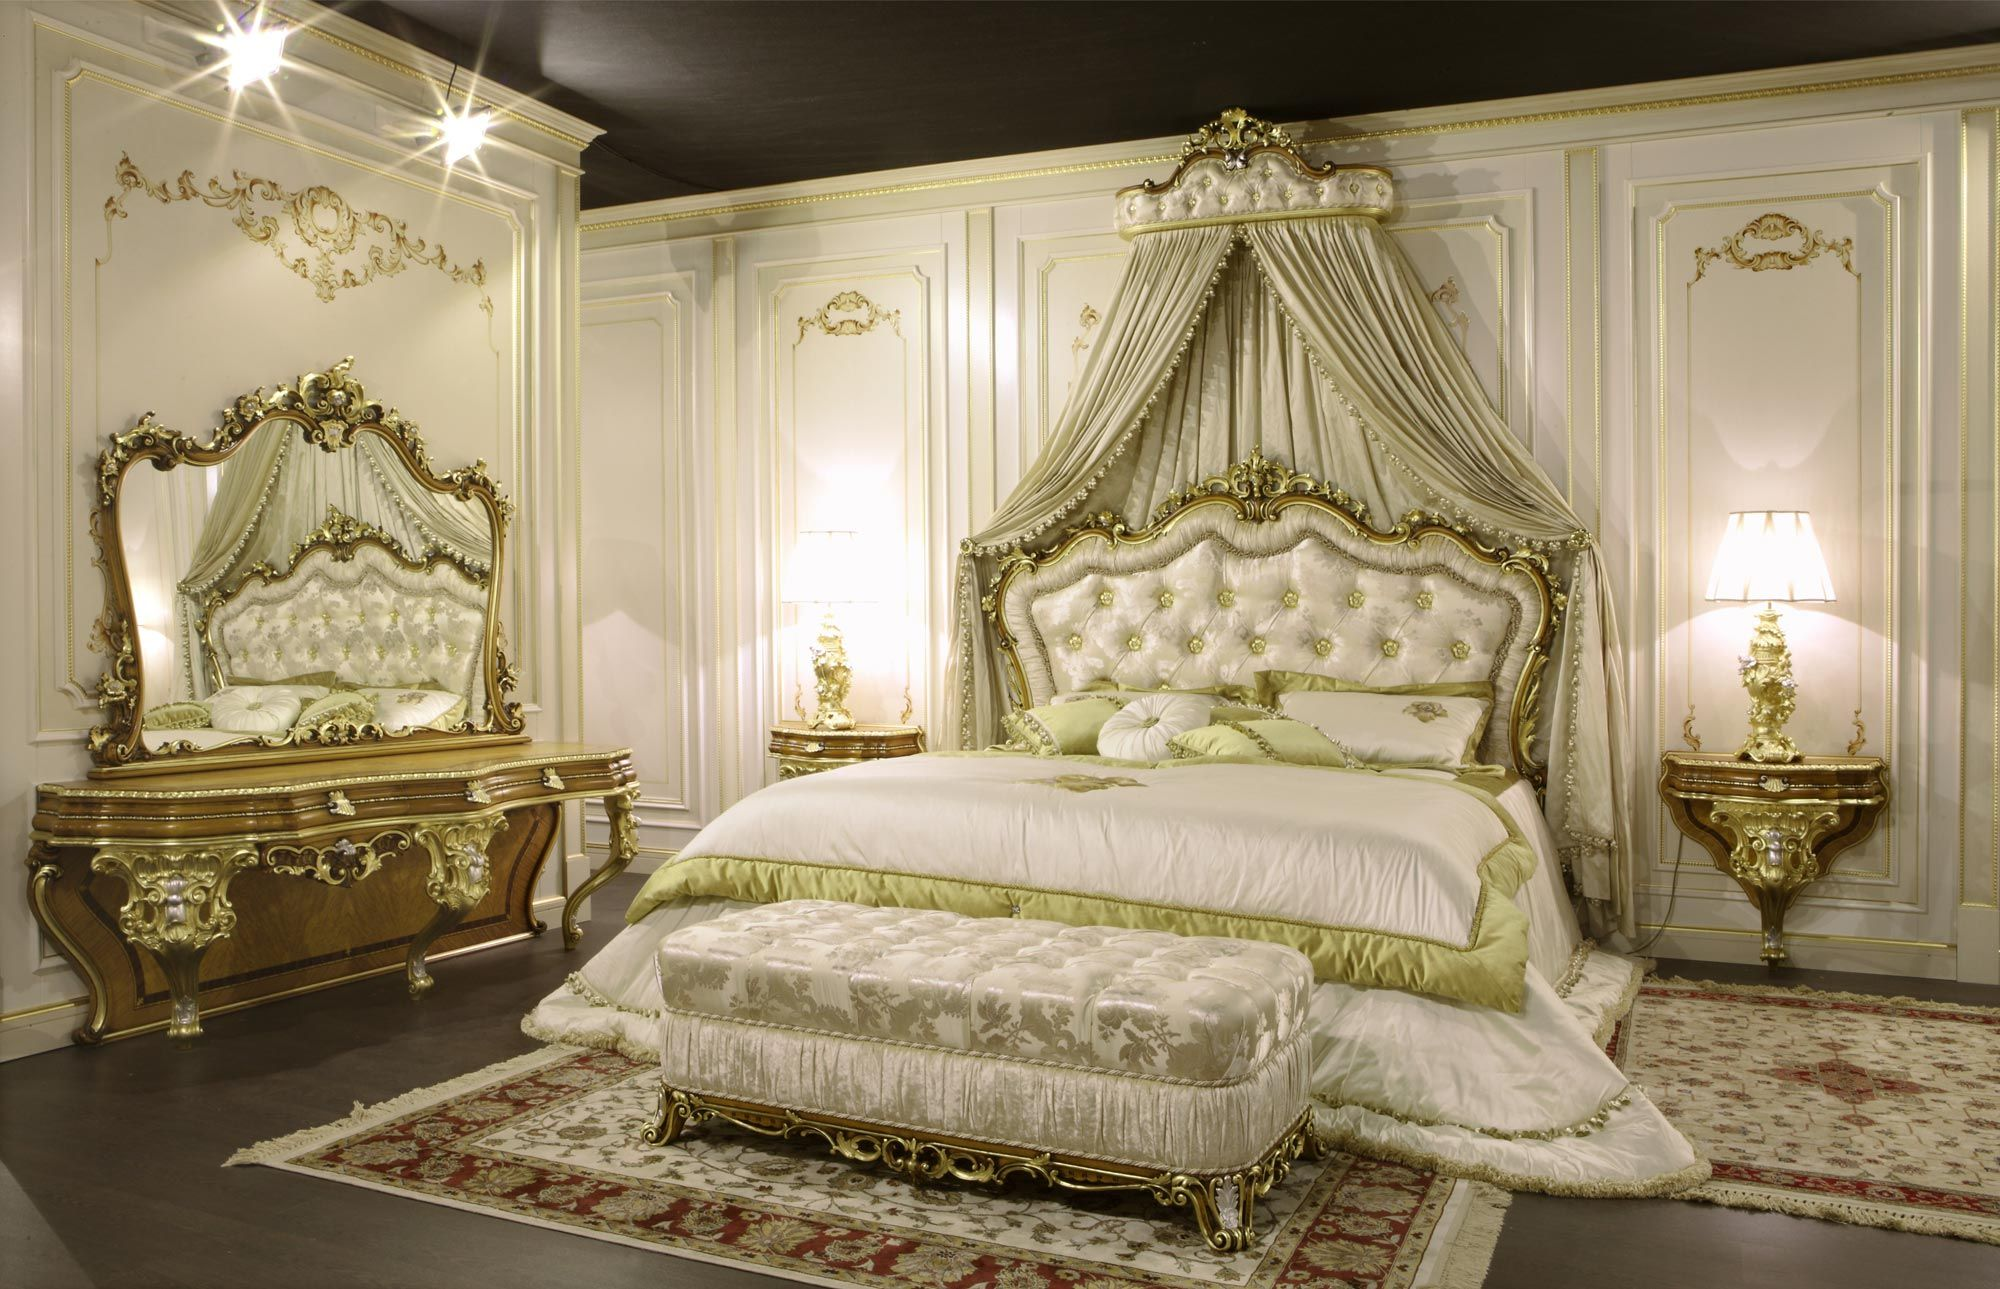 Why You Should Opt For Classic Bedroom Furniture Designalls In 2020 Classic Bedroom Furniture Classic Bedroom New Bedroom Design